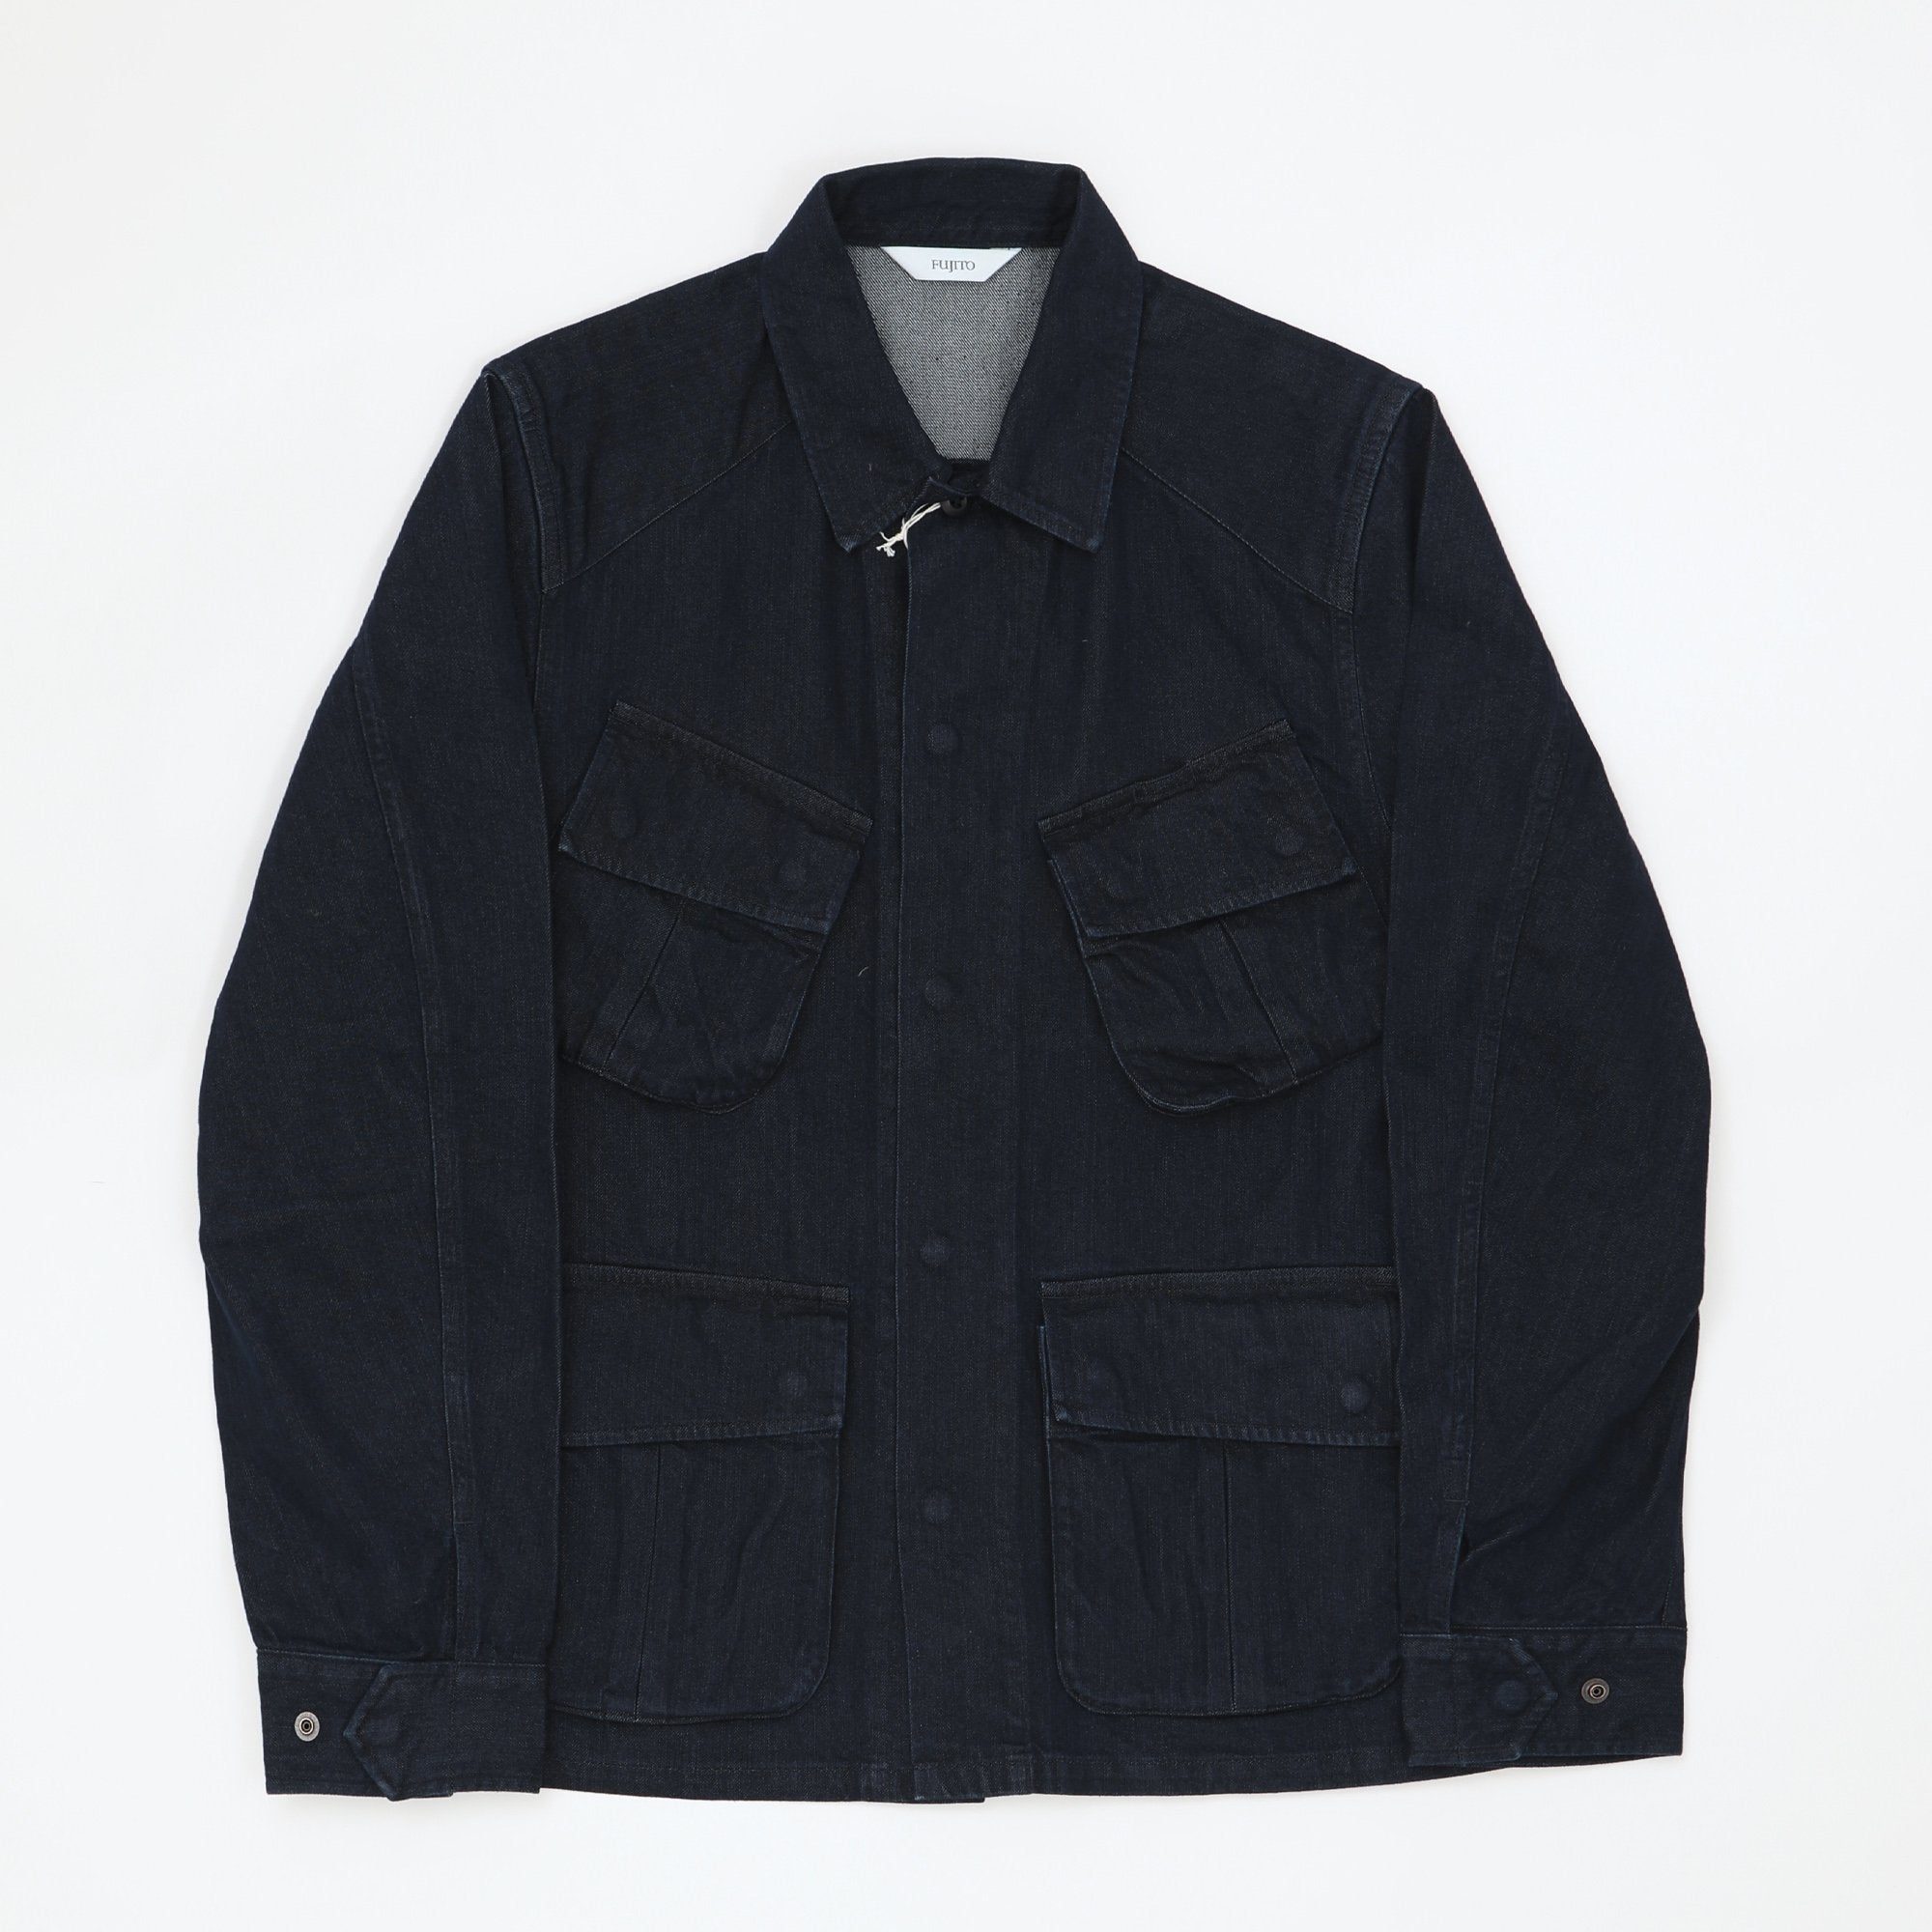 fujito-jungle-fatigue-jacket-indigo-202-sunnysiders.jpg